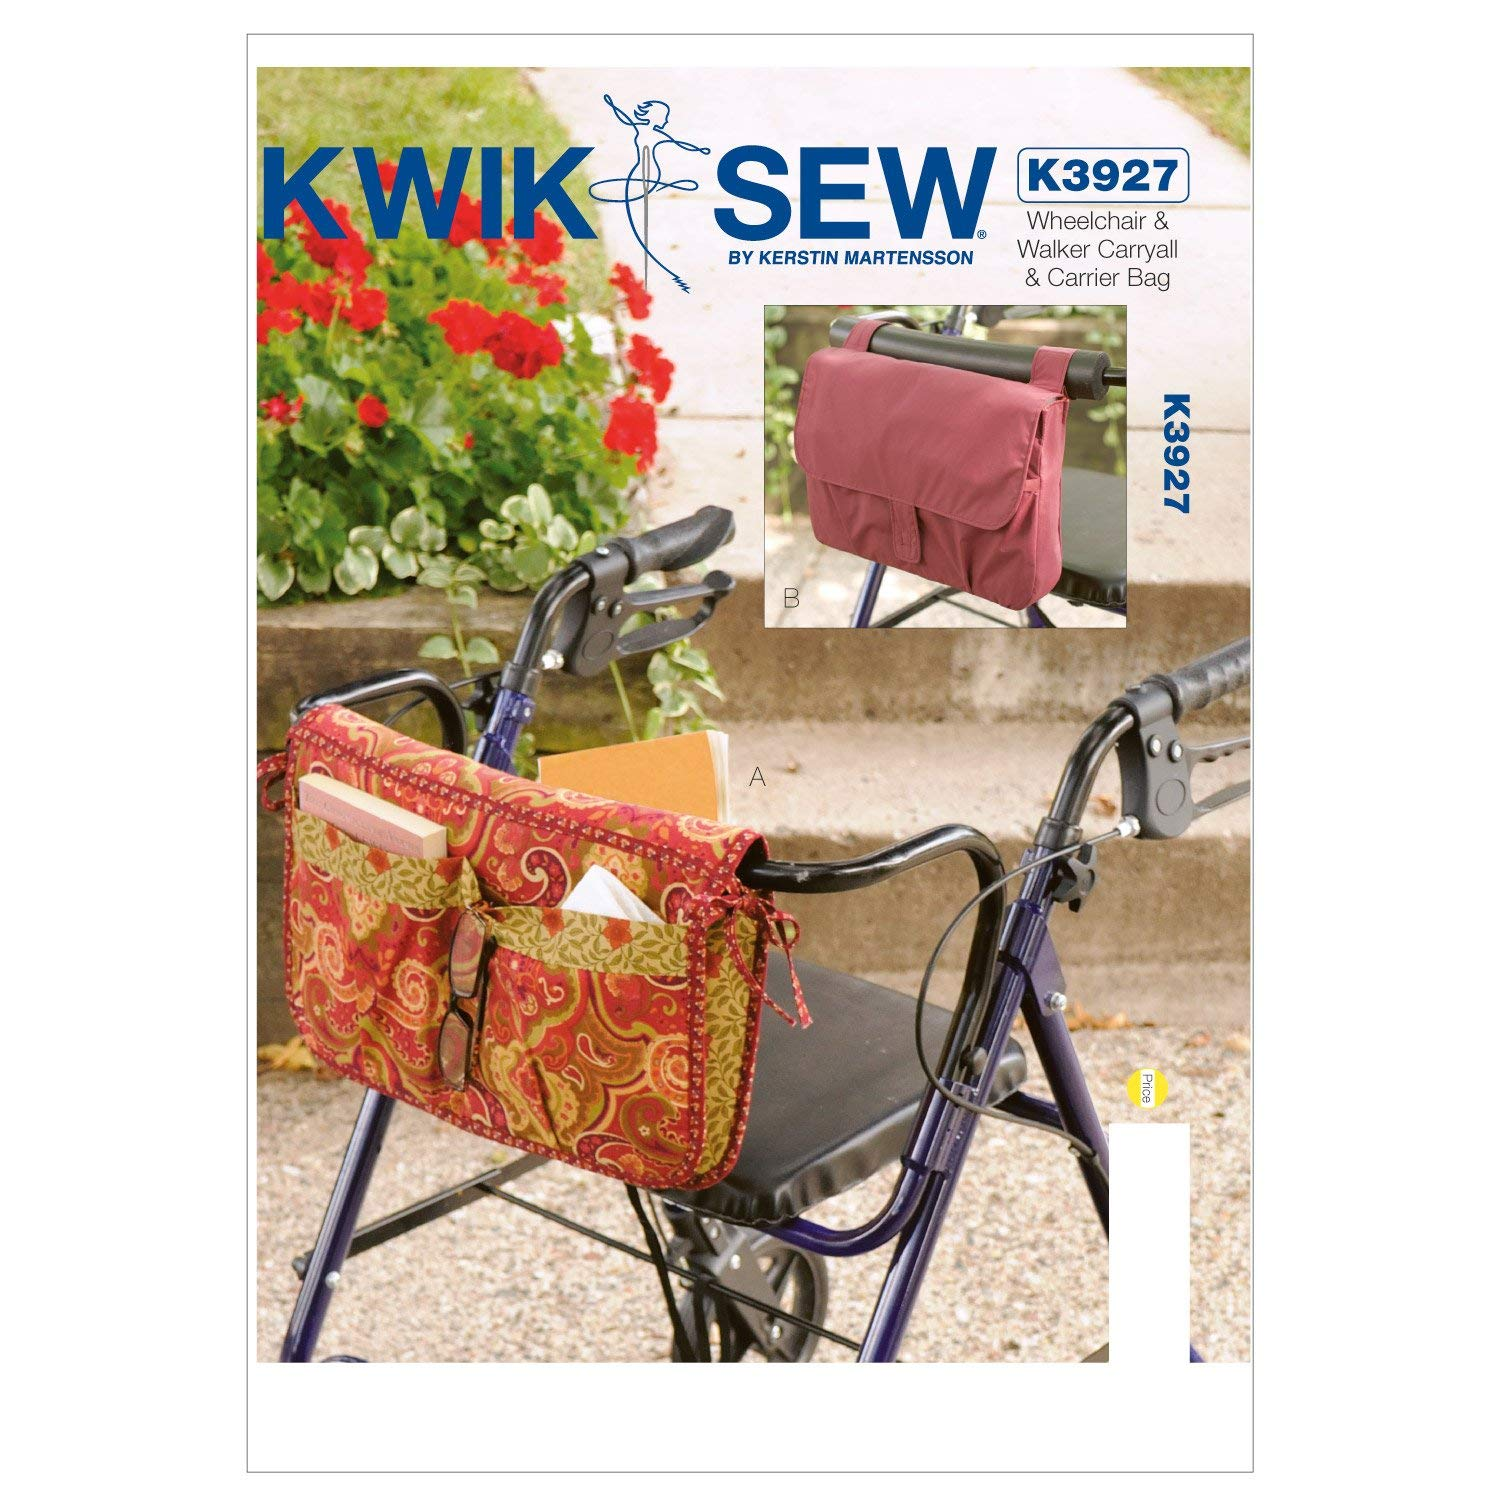 Get Quotations Kwik Sew K3927 Wheelchair And Walker Carryall Carrier Bag Sewing Pattern No Size